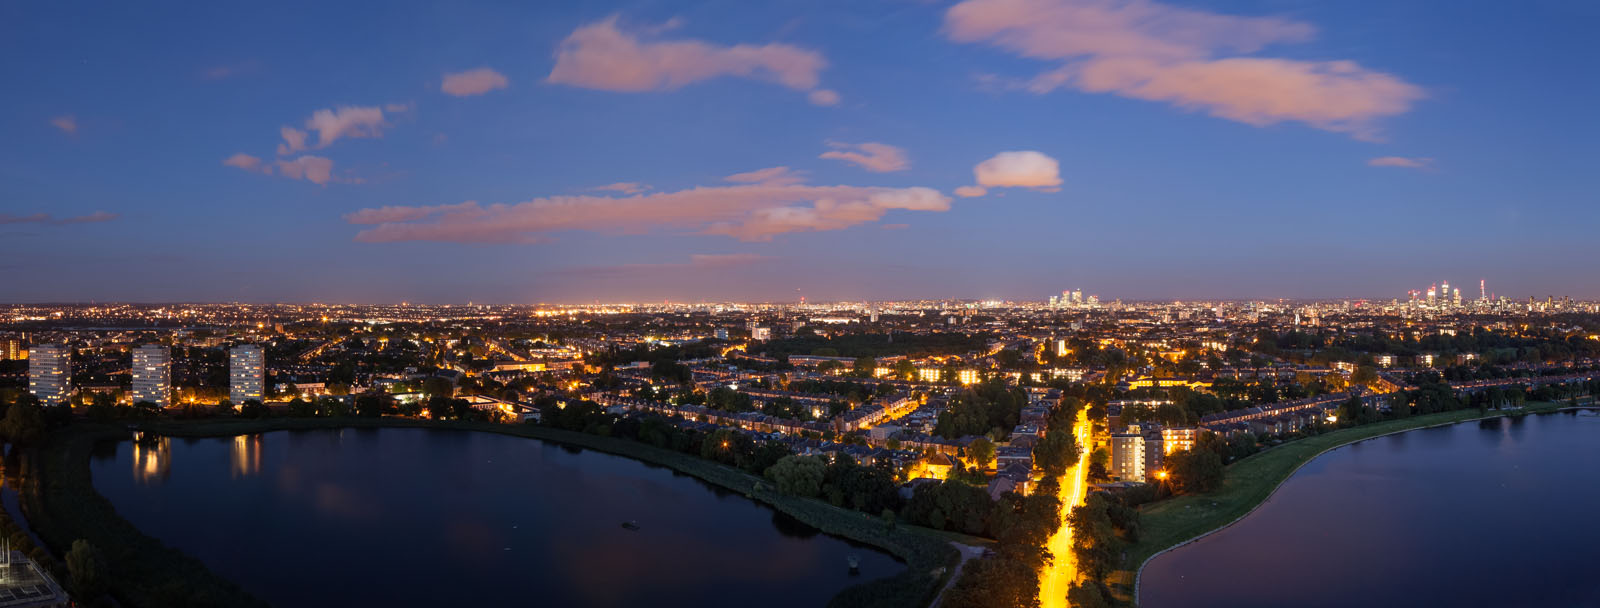 Woodberry aerial view of reservoirs at dusk